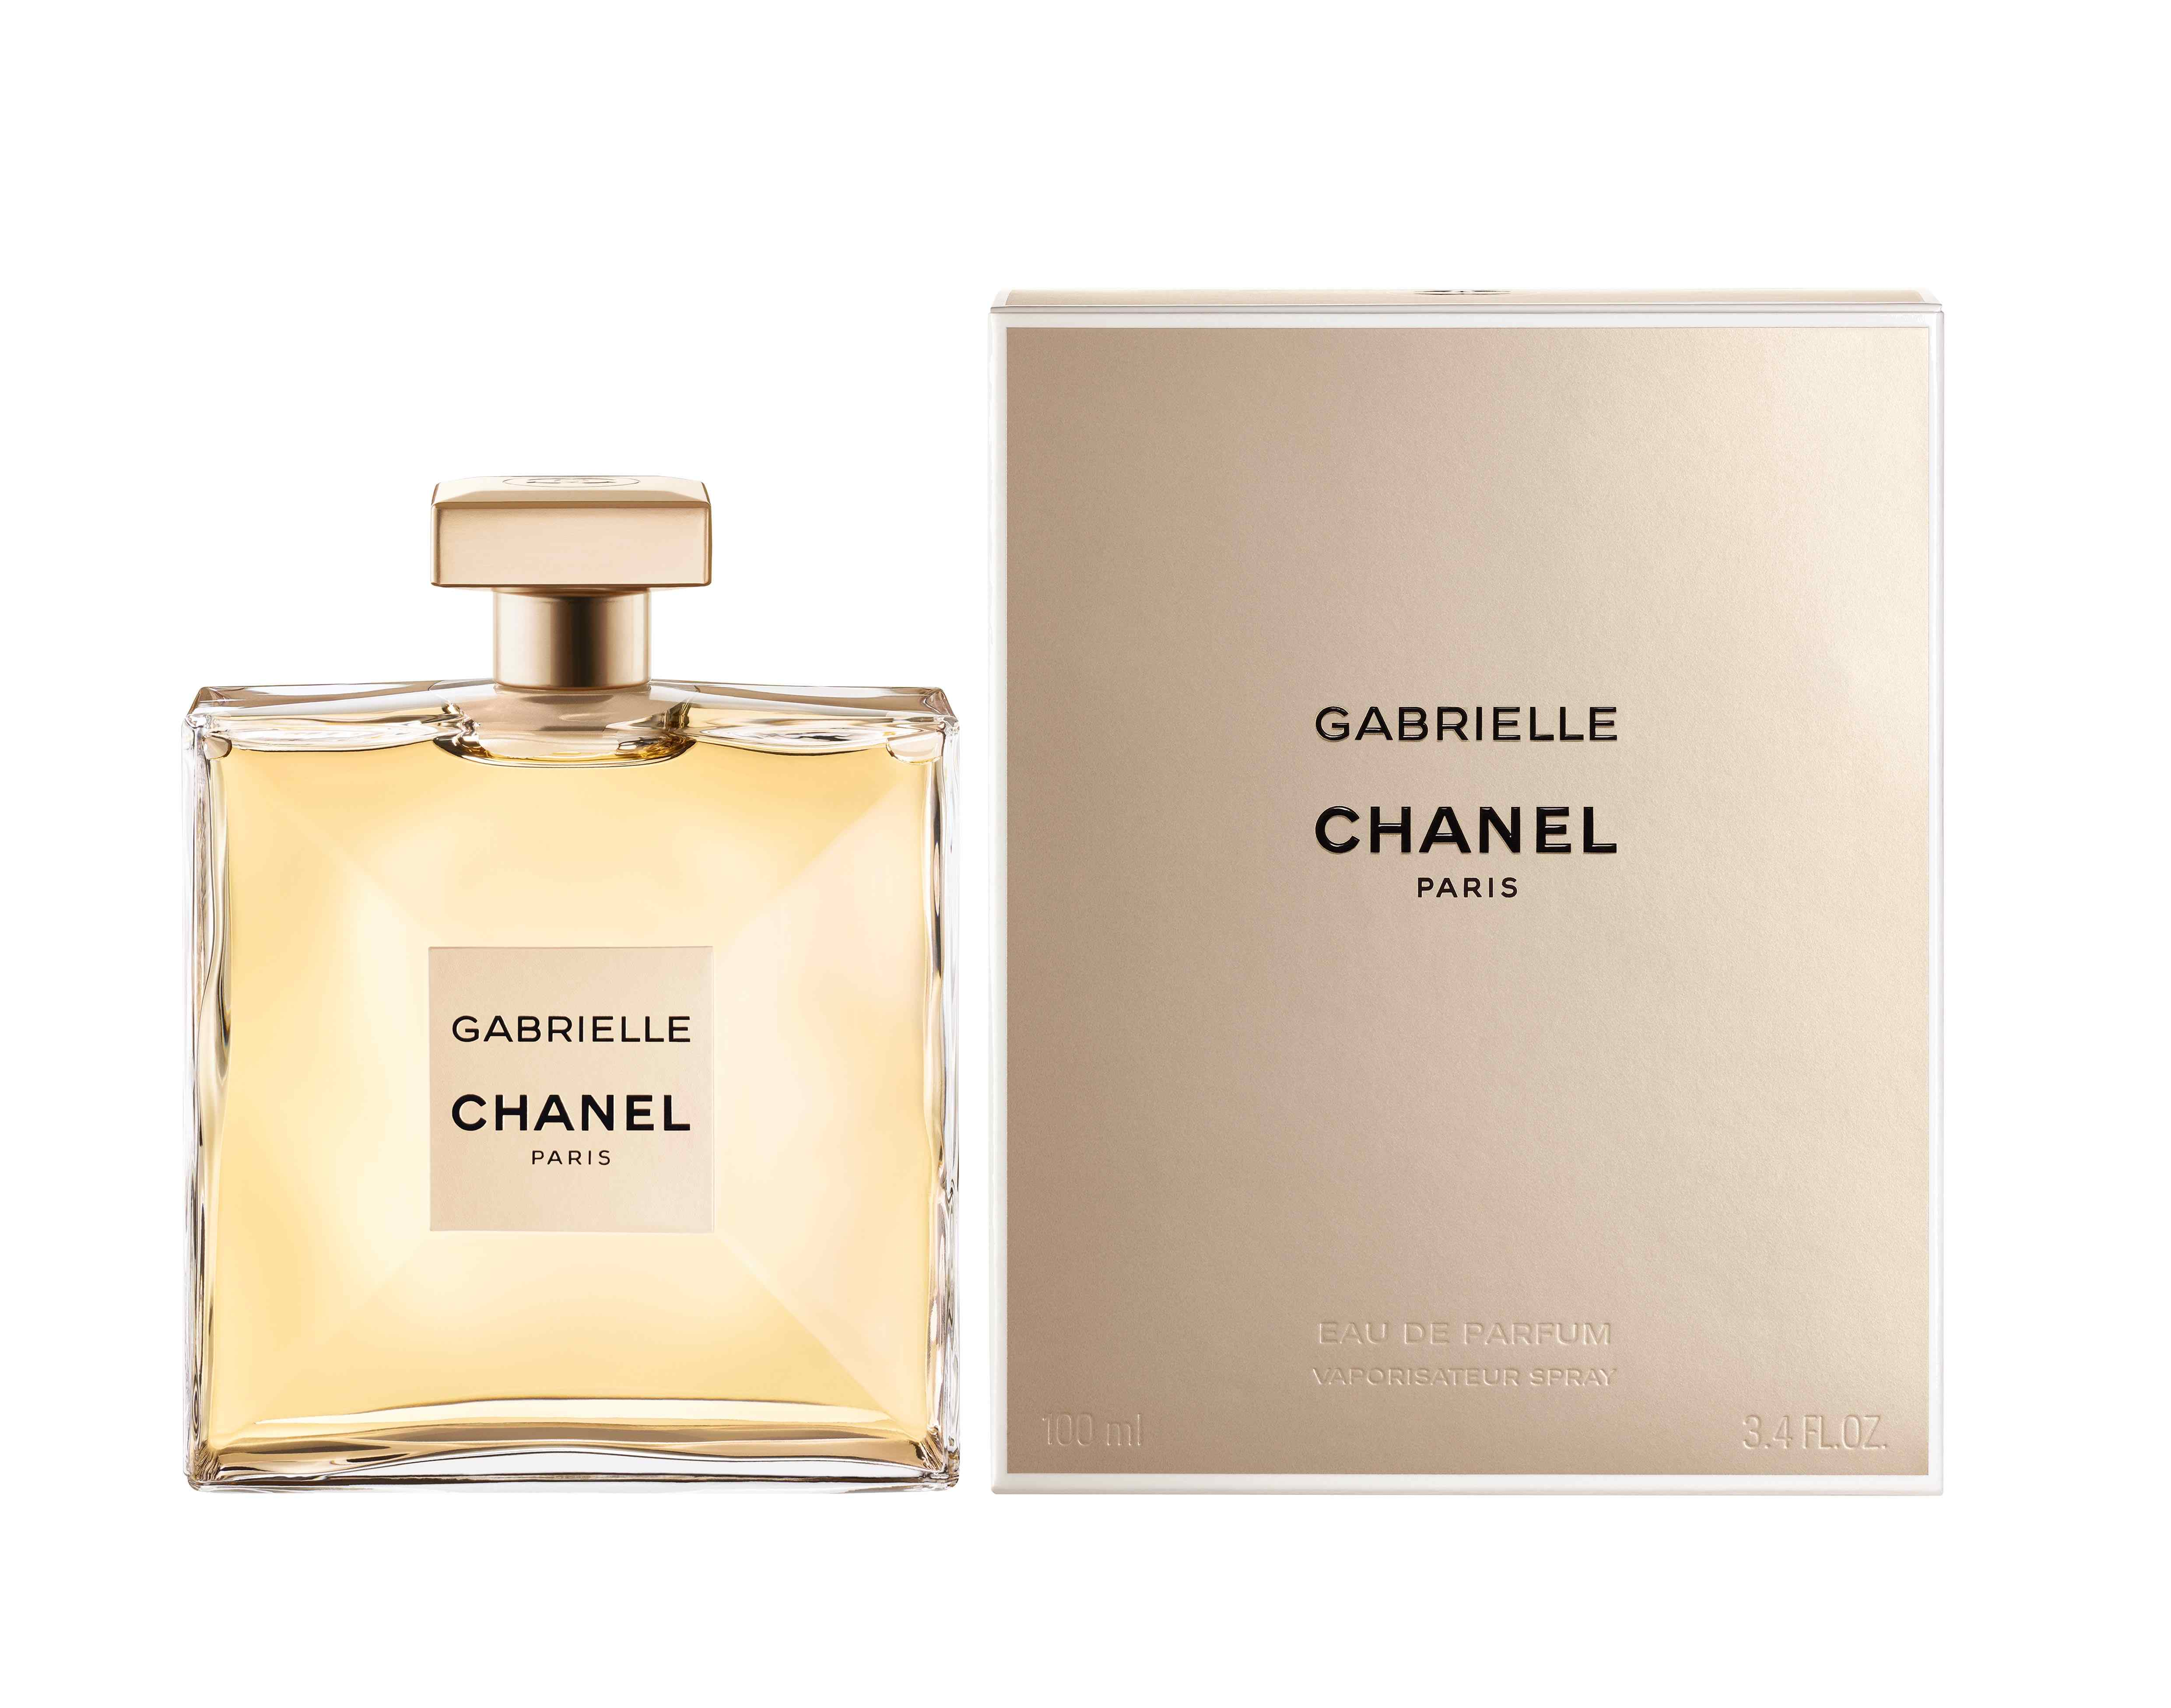 Gabrielle Chanel Perfume Packaging